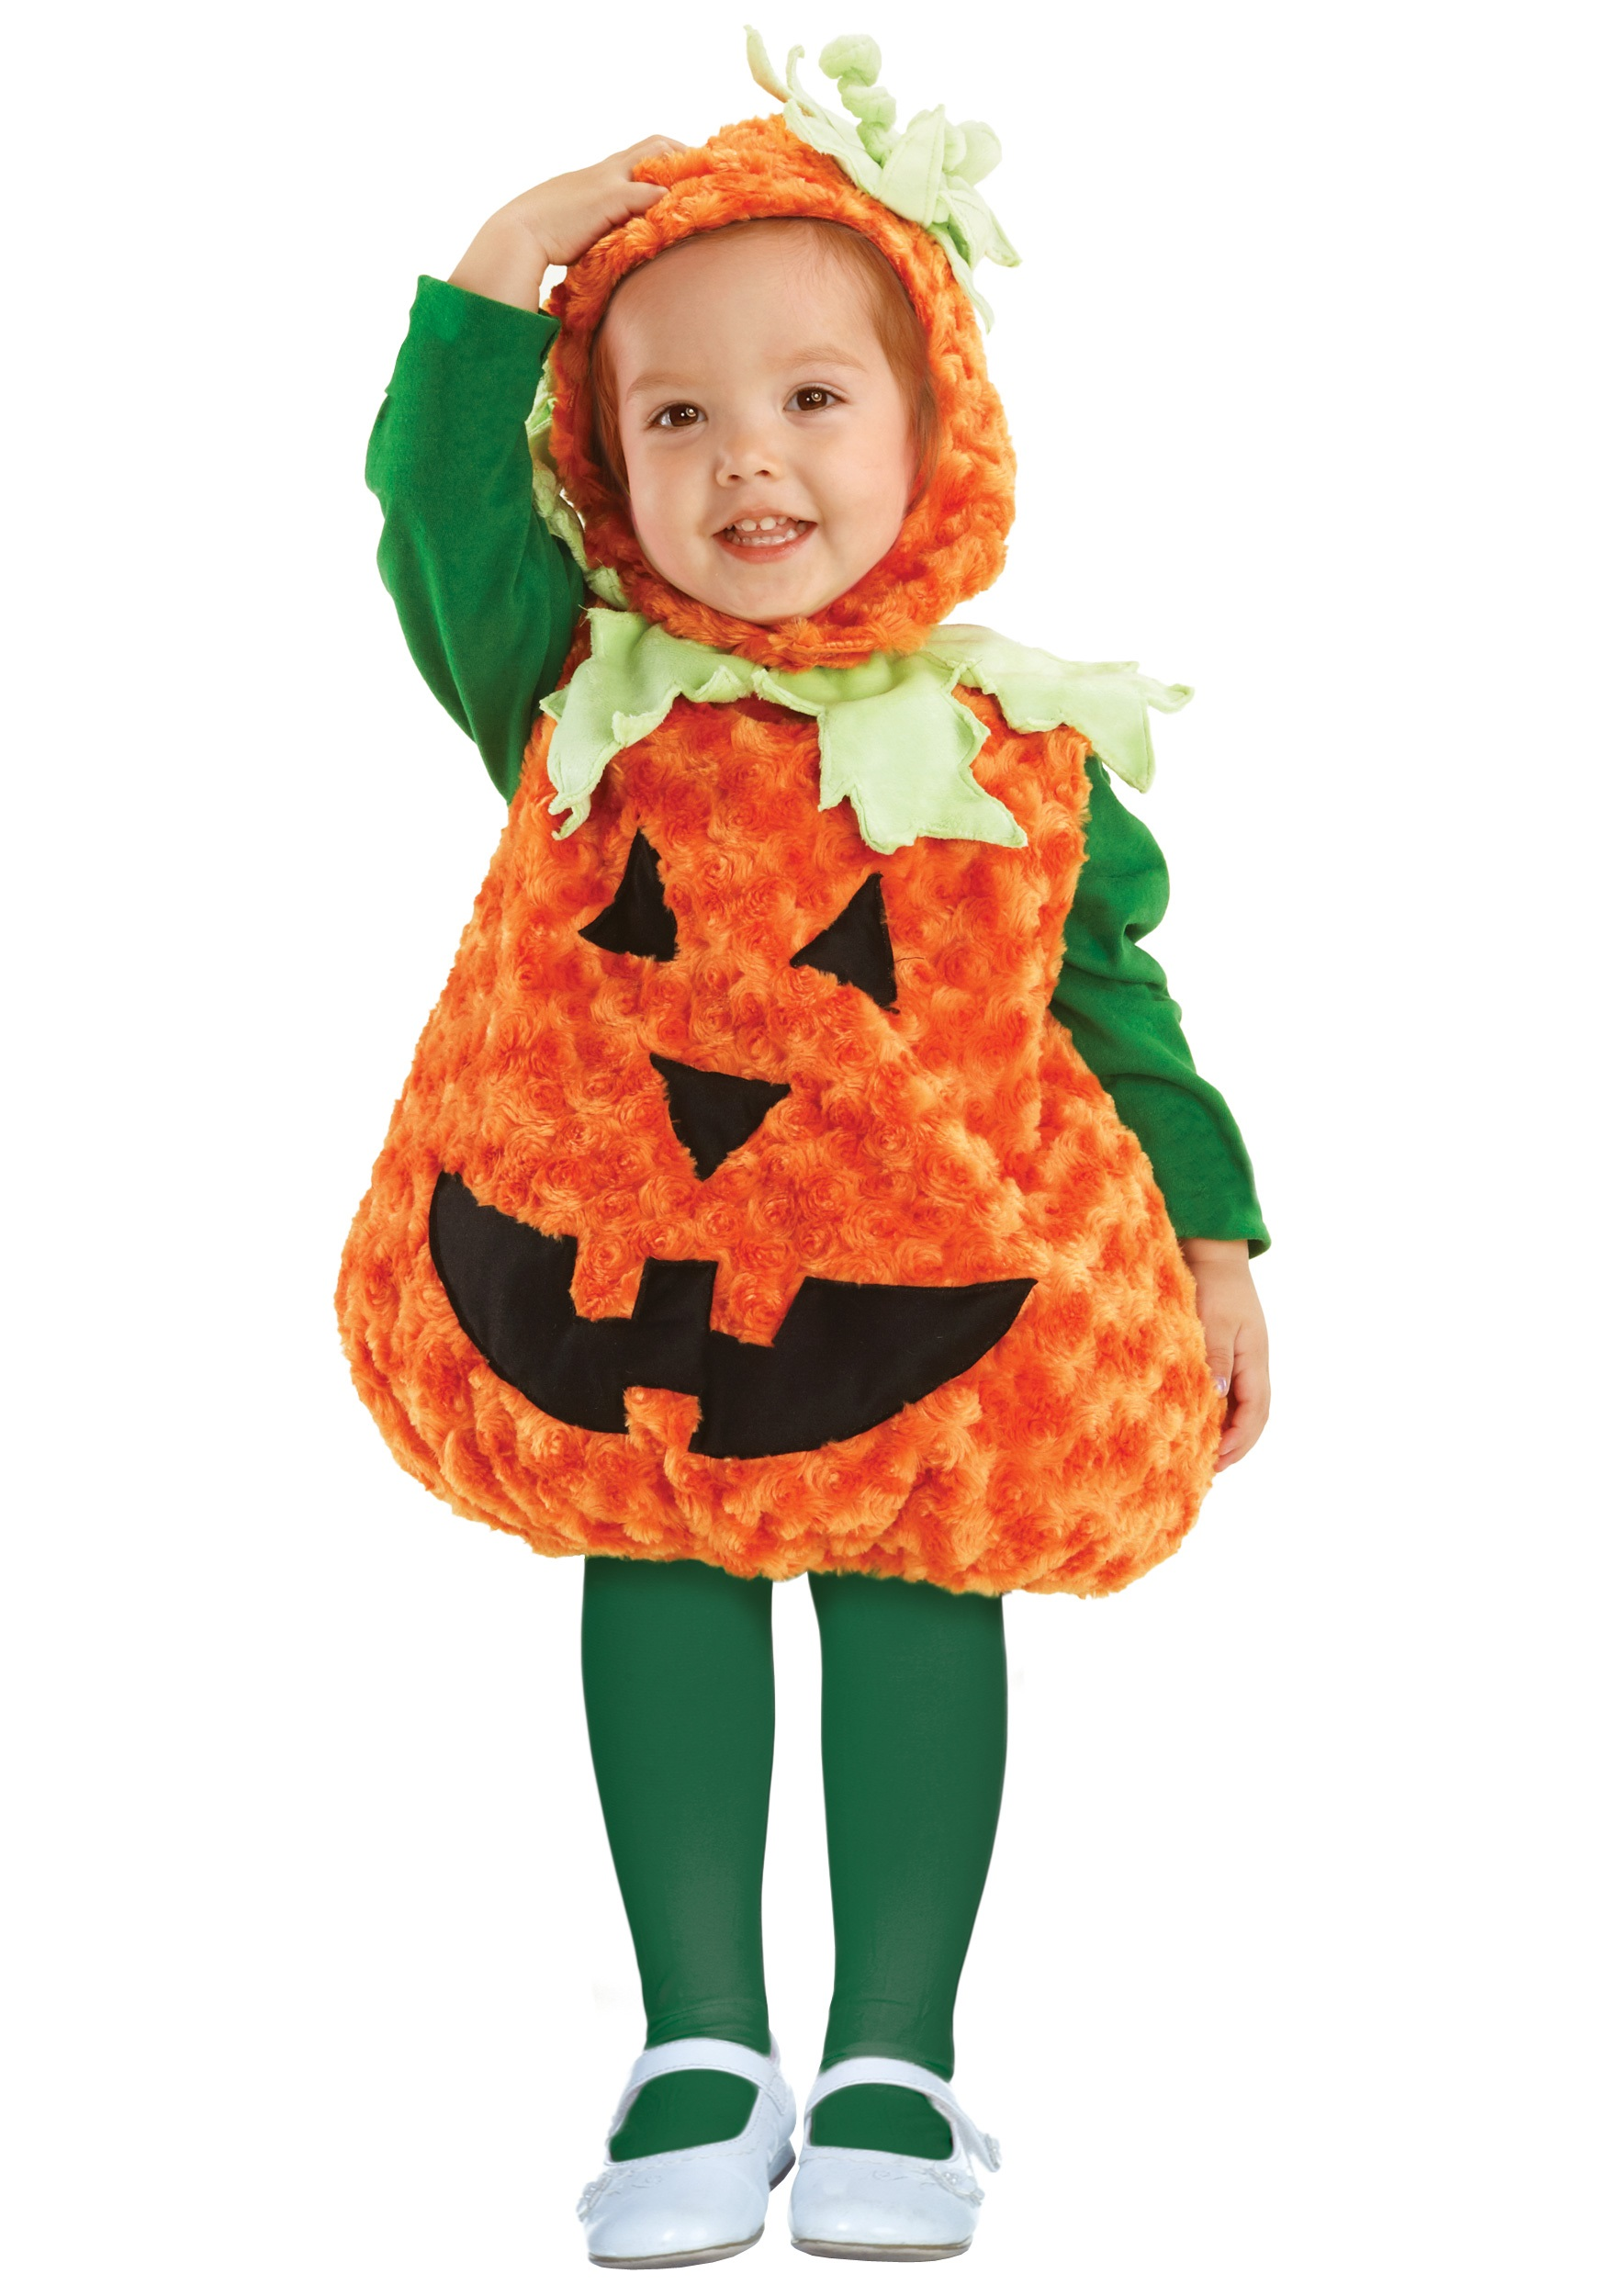 Toddler Plush Pumpkin Costume  sc 1 st  Halloween Costume & Toddler Plush Pumpkin Costume - Kidsu0027 Classic Halloween Costume Ideas